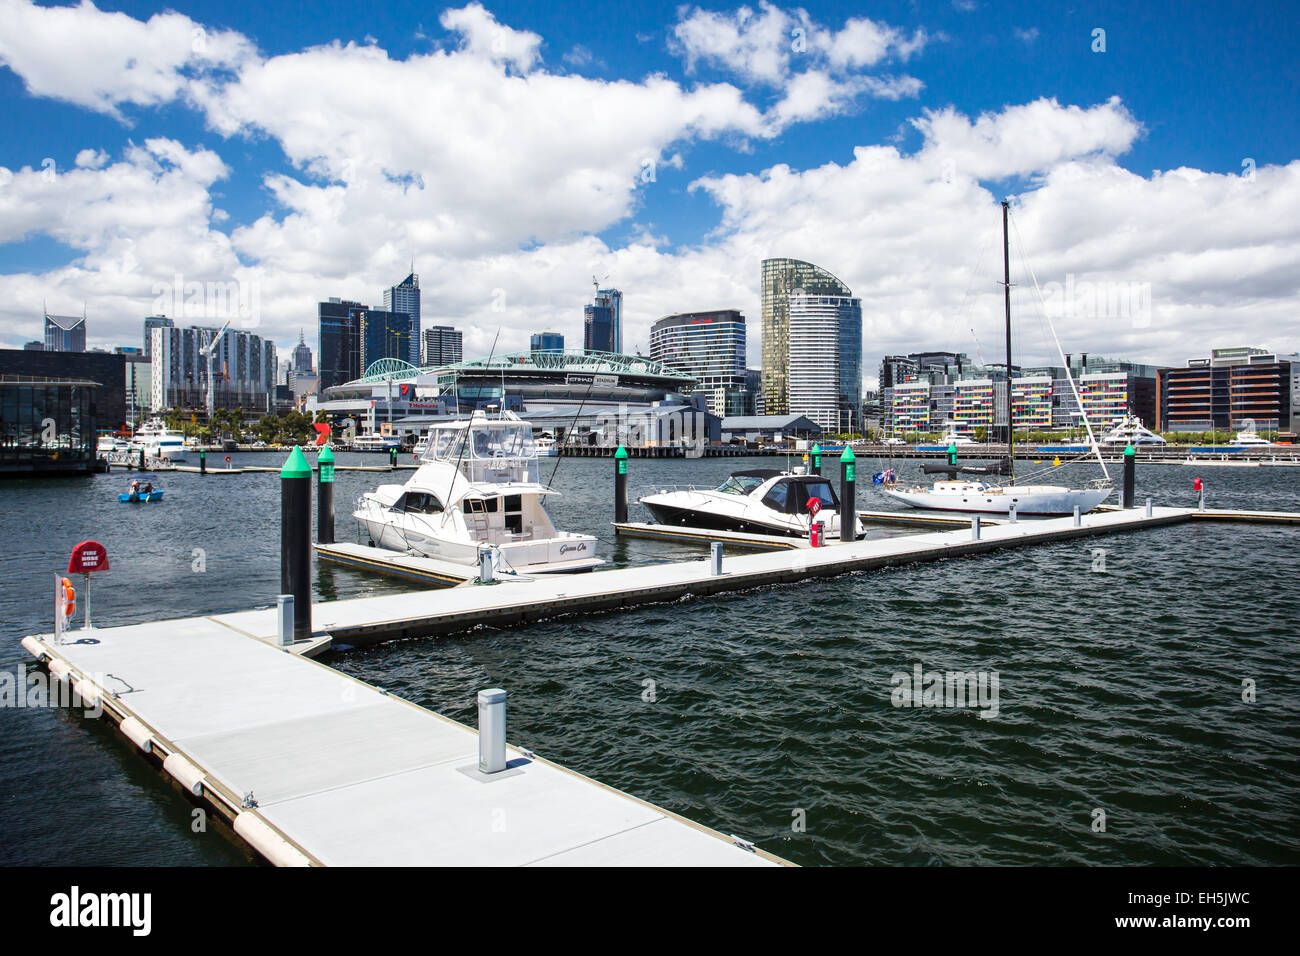 The famous Melbourne skyline from a pier at Docklands on a hot summer's day - Stock Image